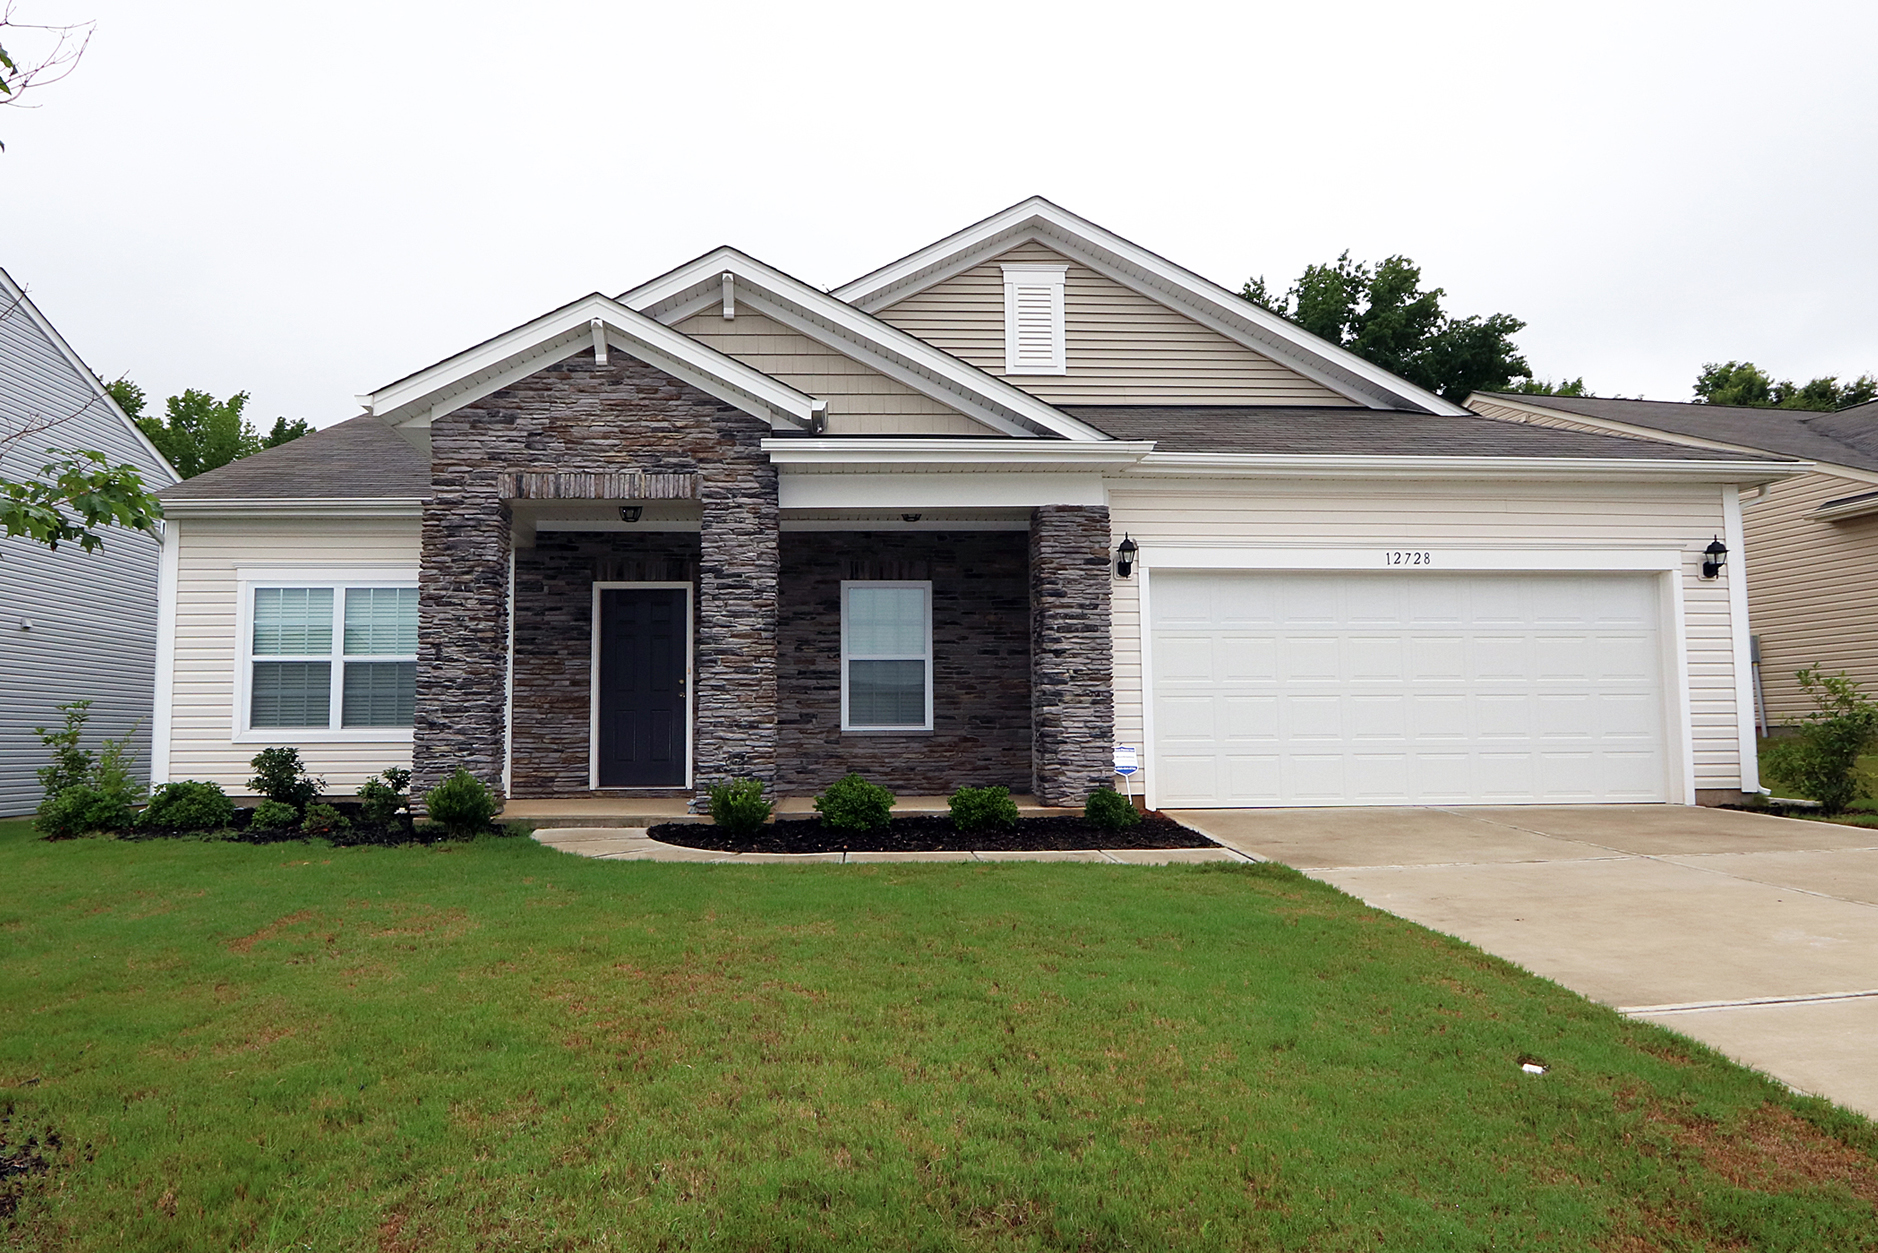 Just listed by don anthony realty 4 bedroom 2 5 bath home - 5 bedroom houses for sale in charlotte nc ...